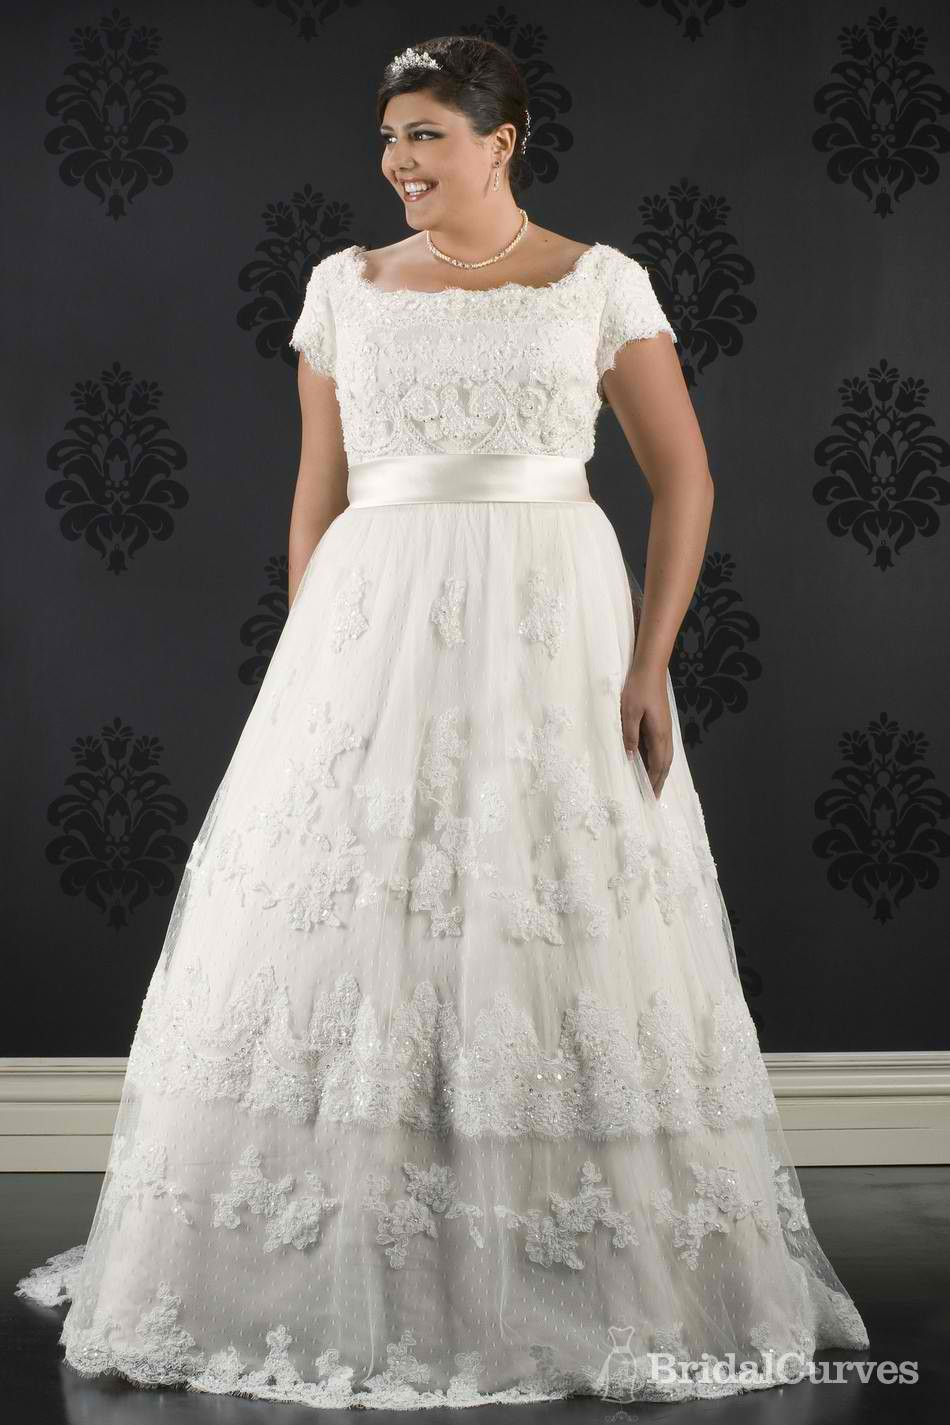 Modest Plus Size Wedding Dresses - Wedding Short Dresses